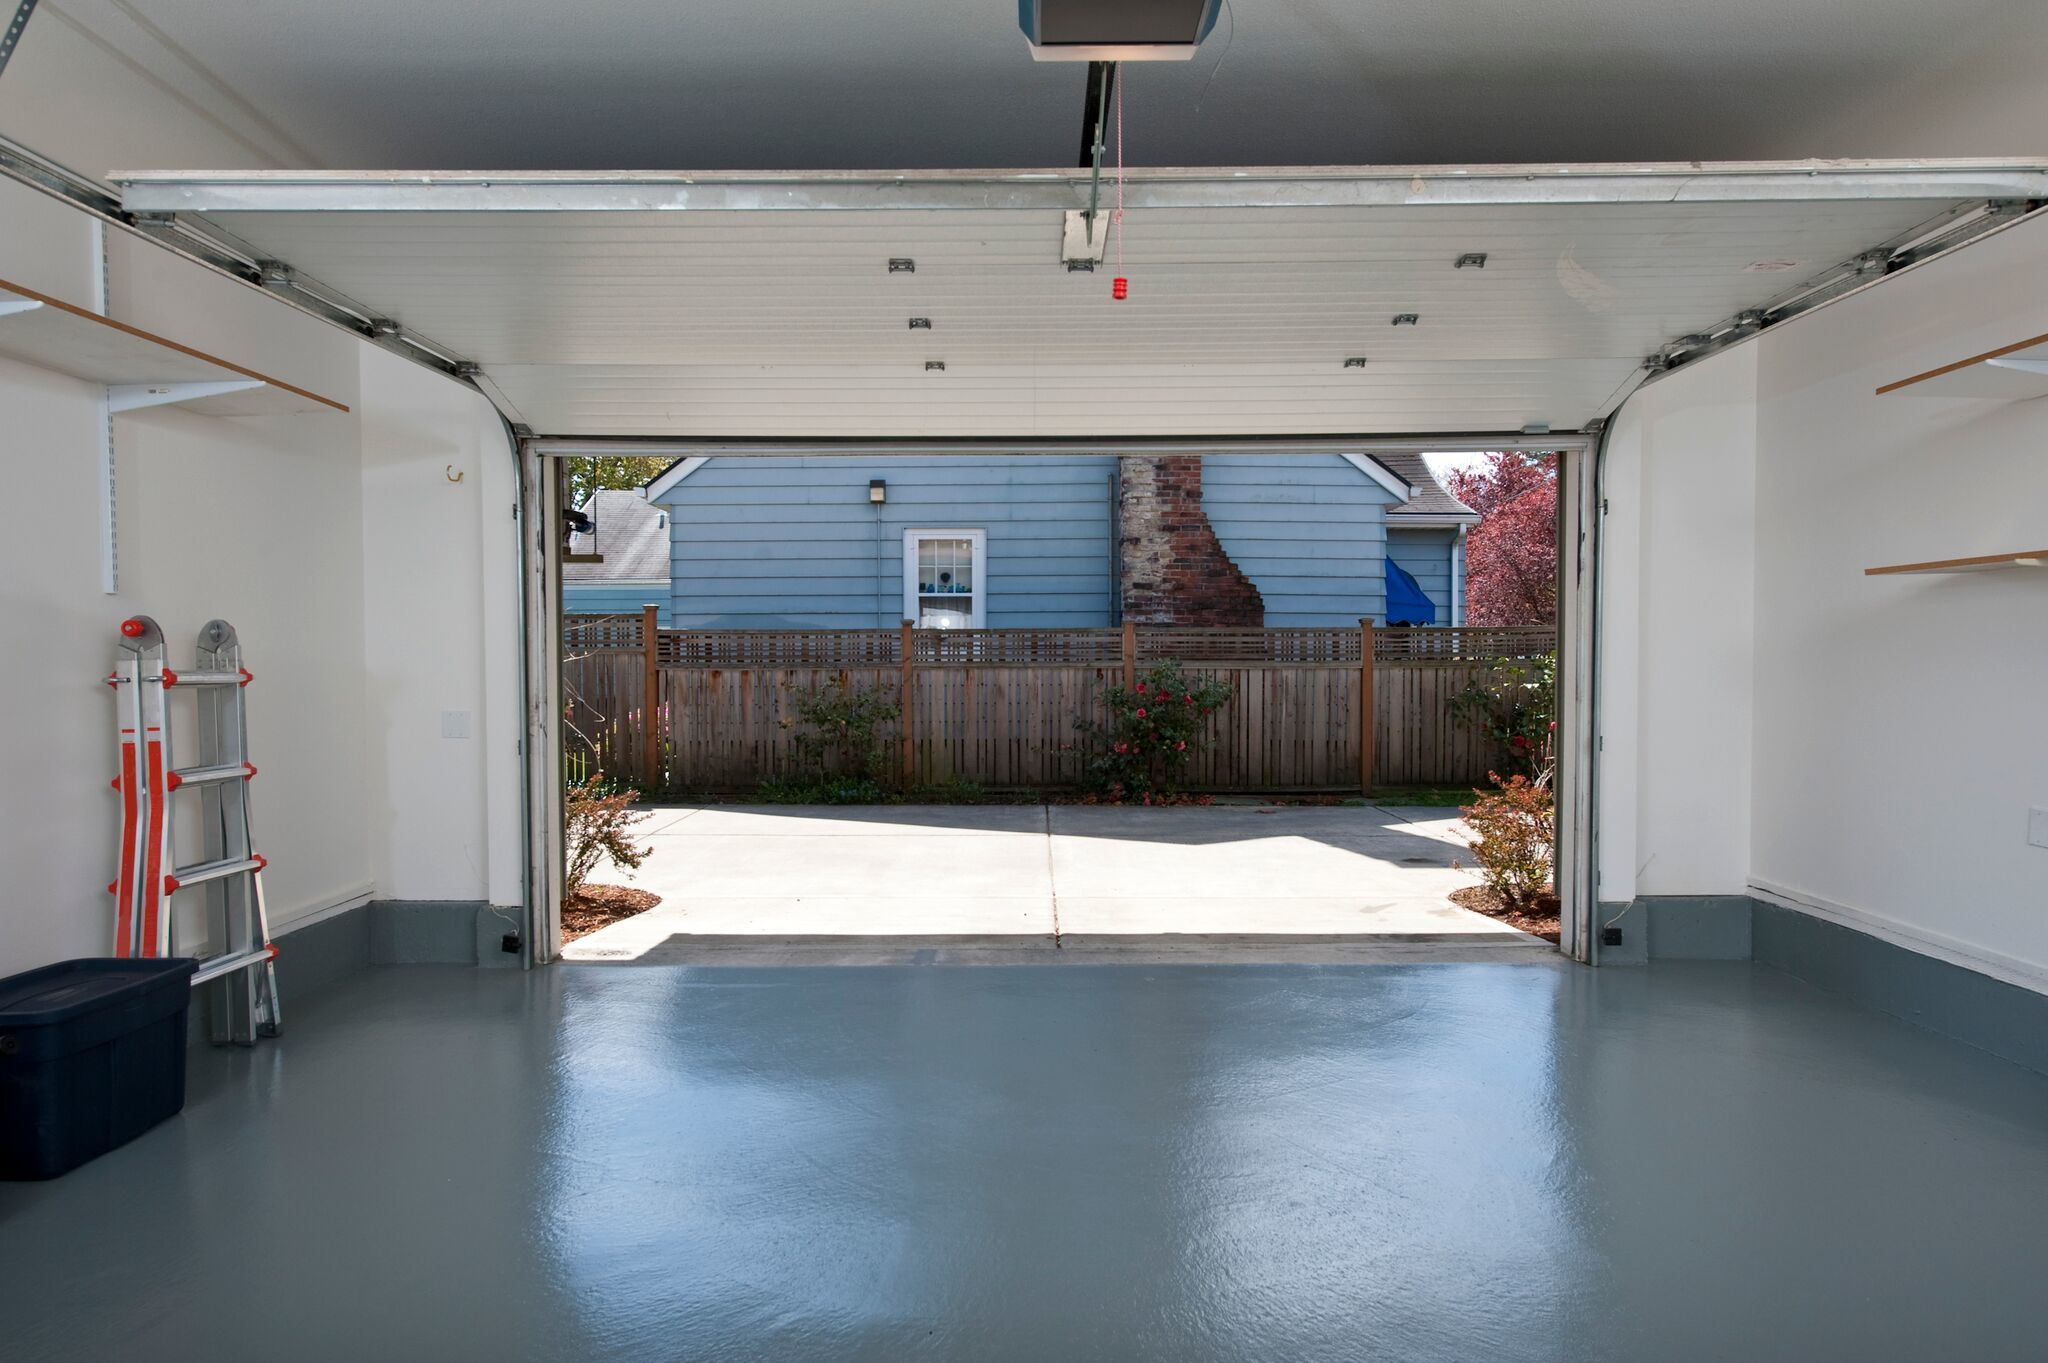 concrete floor in a clean garage